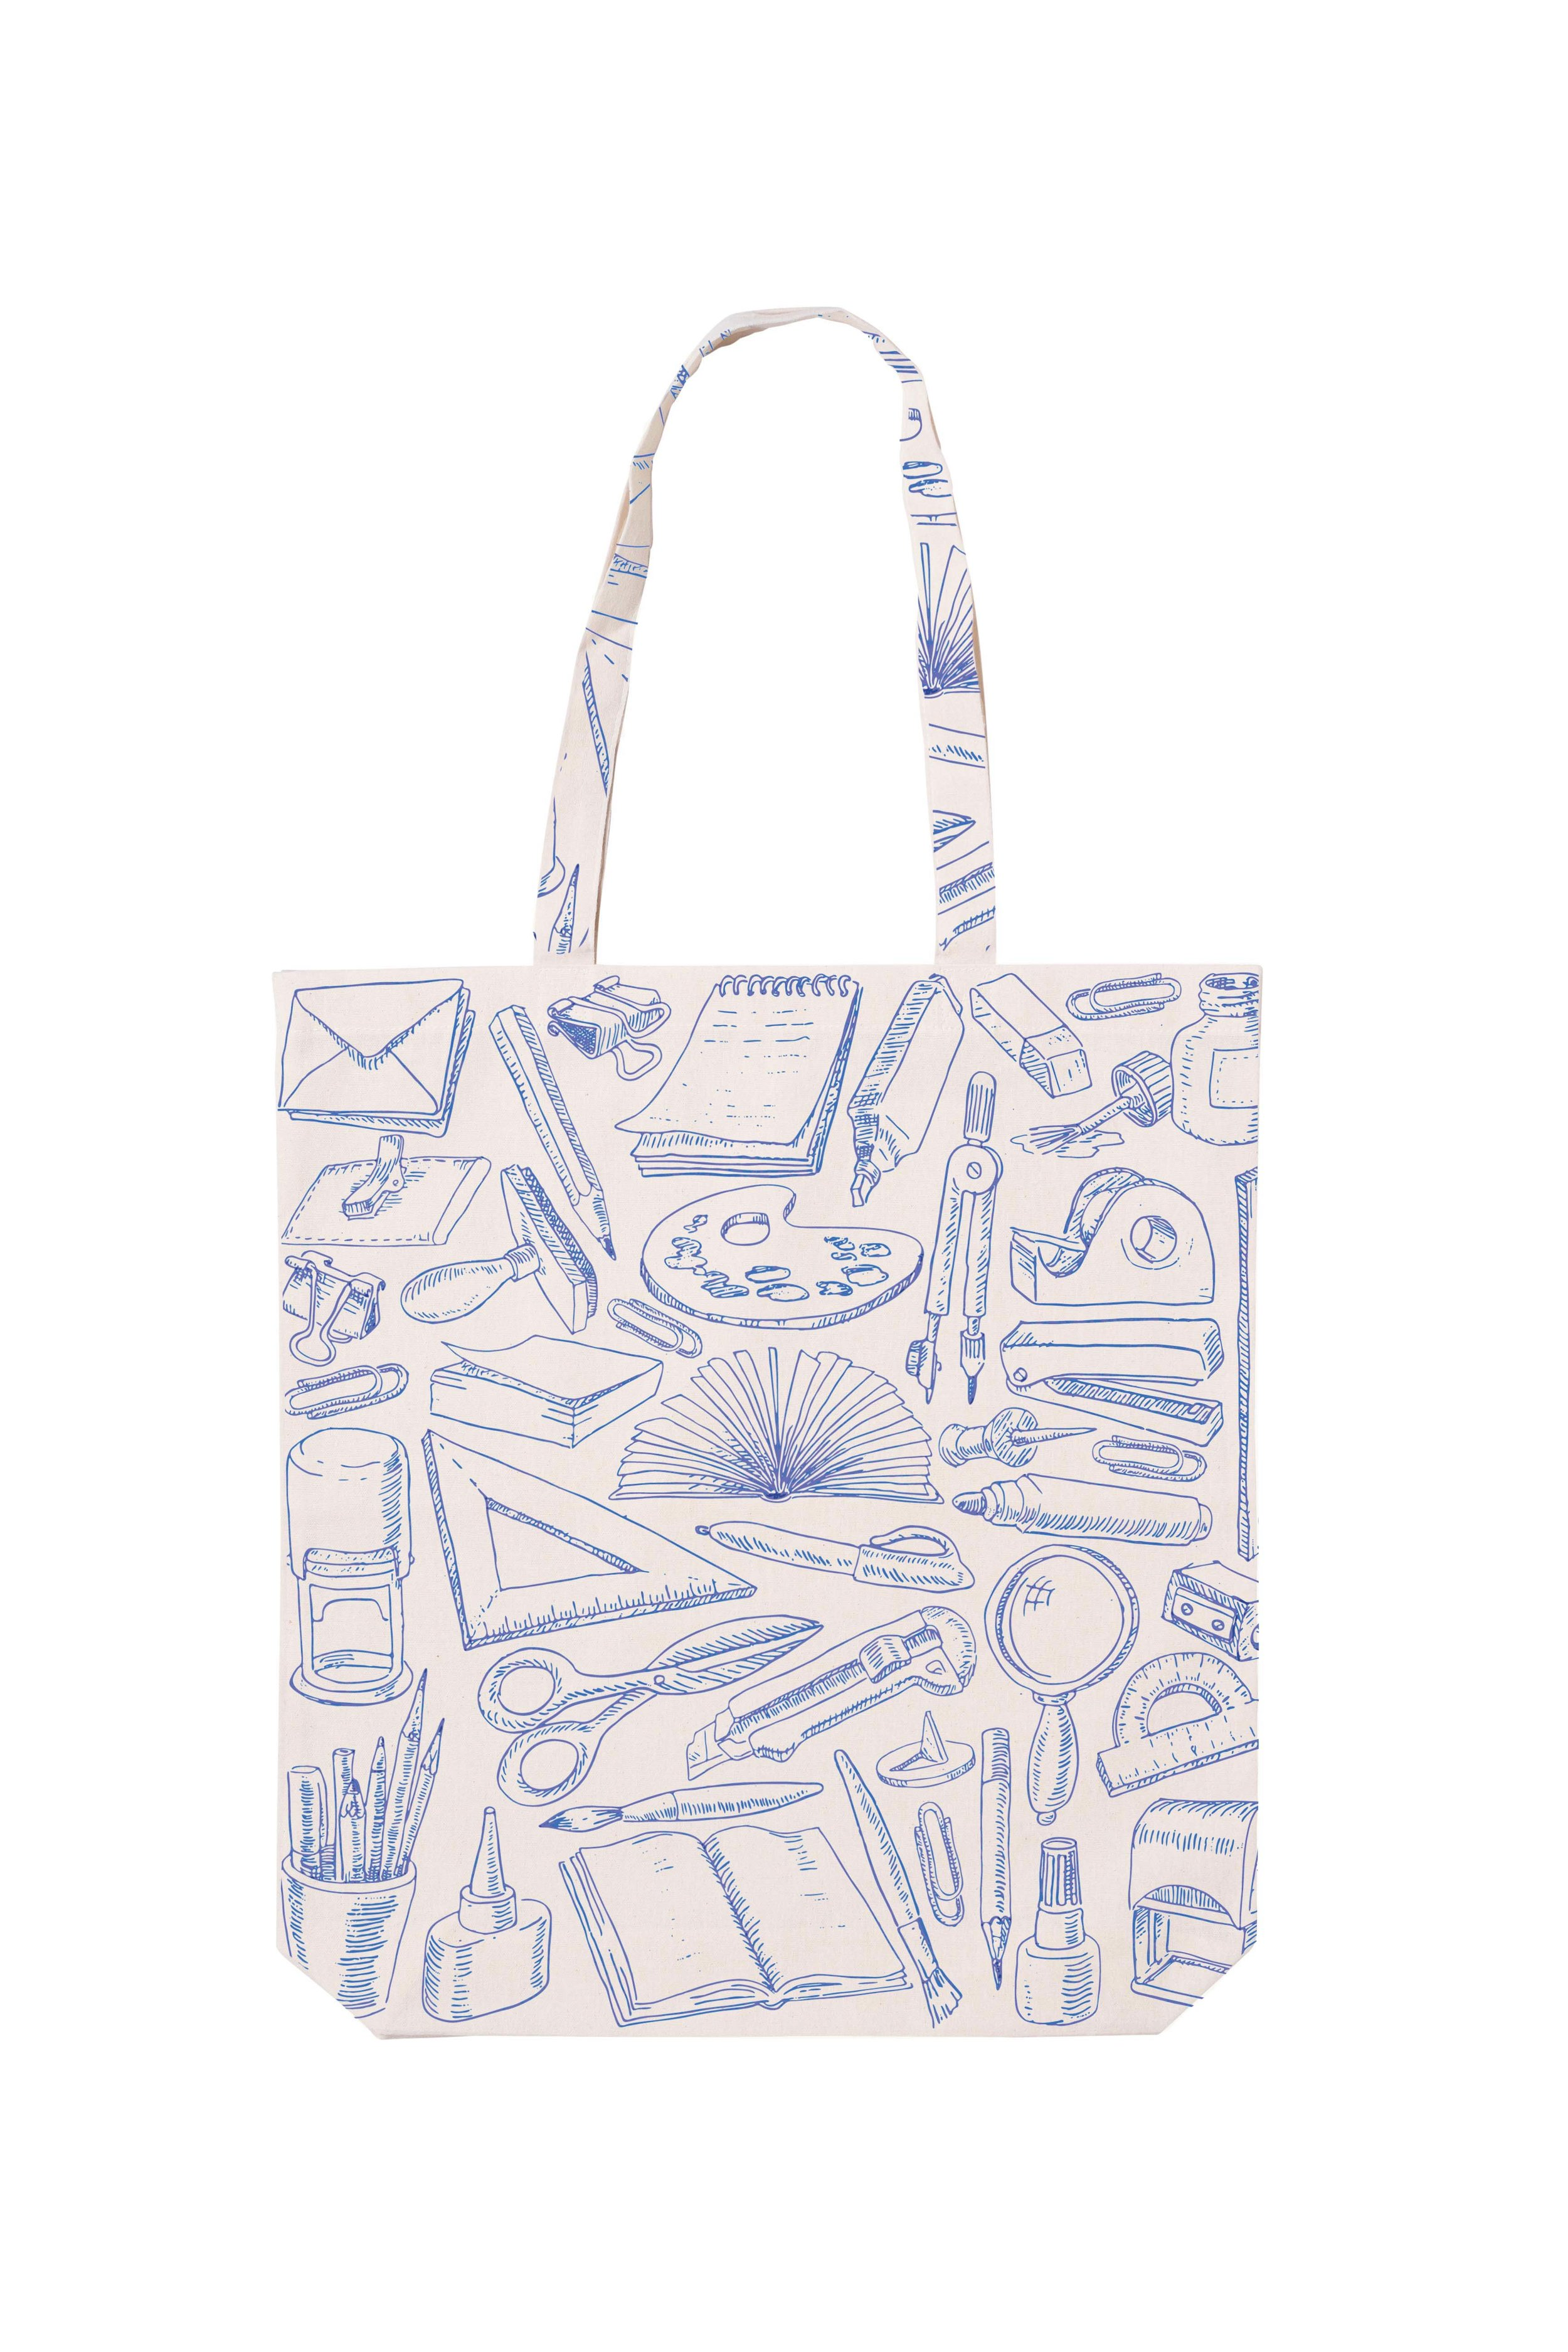 Stationer-DTS-003 Eco Carry Tote.jpg